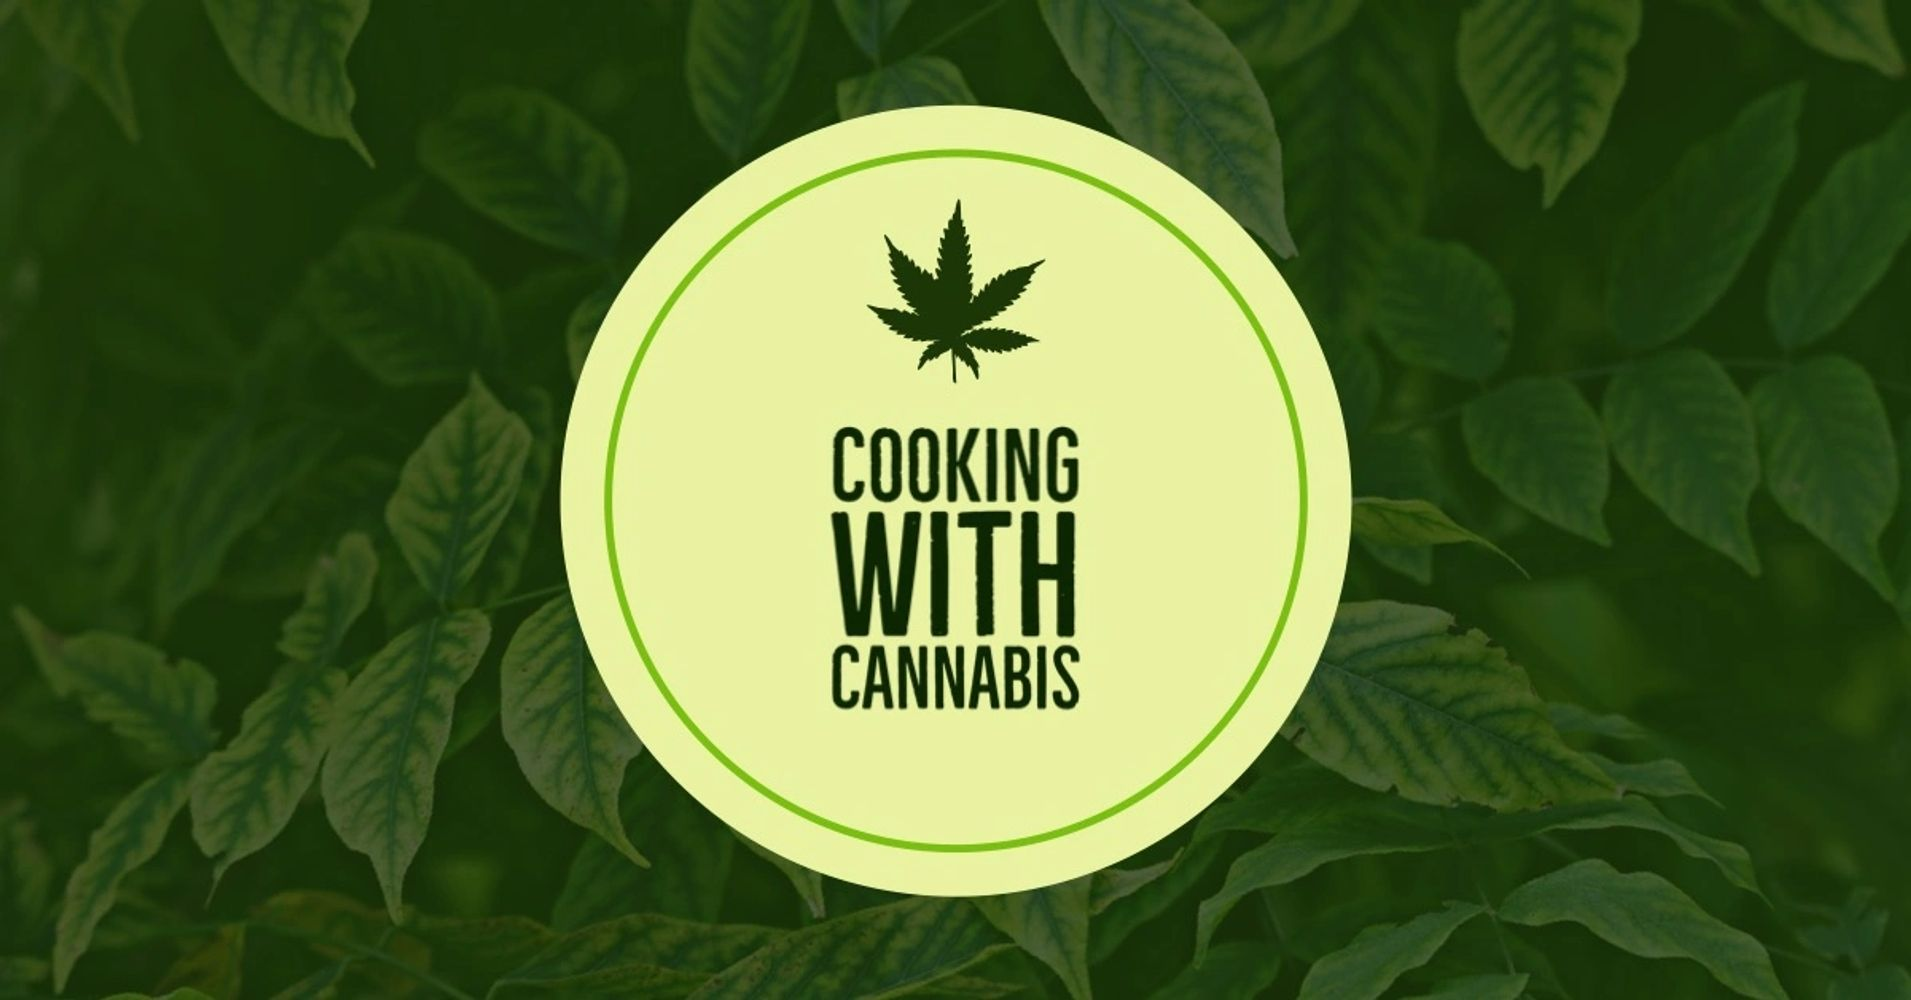 Cooking with cannabis tv logo